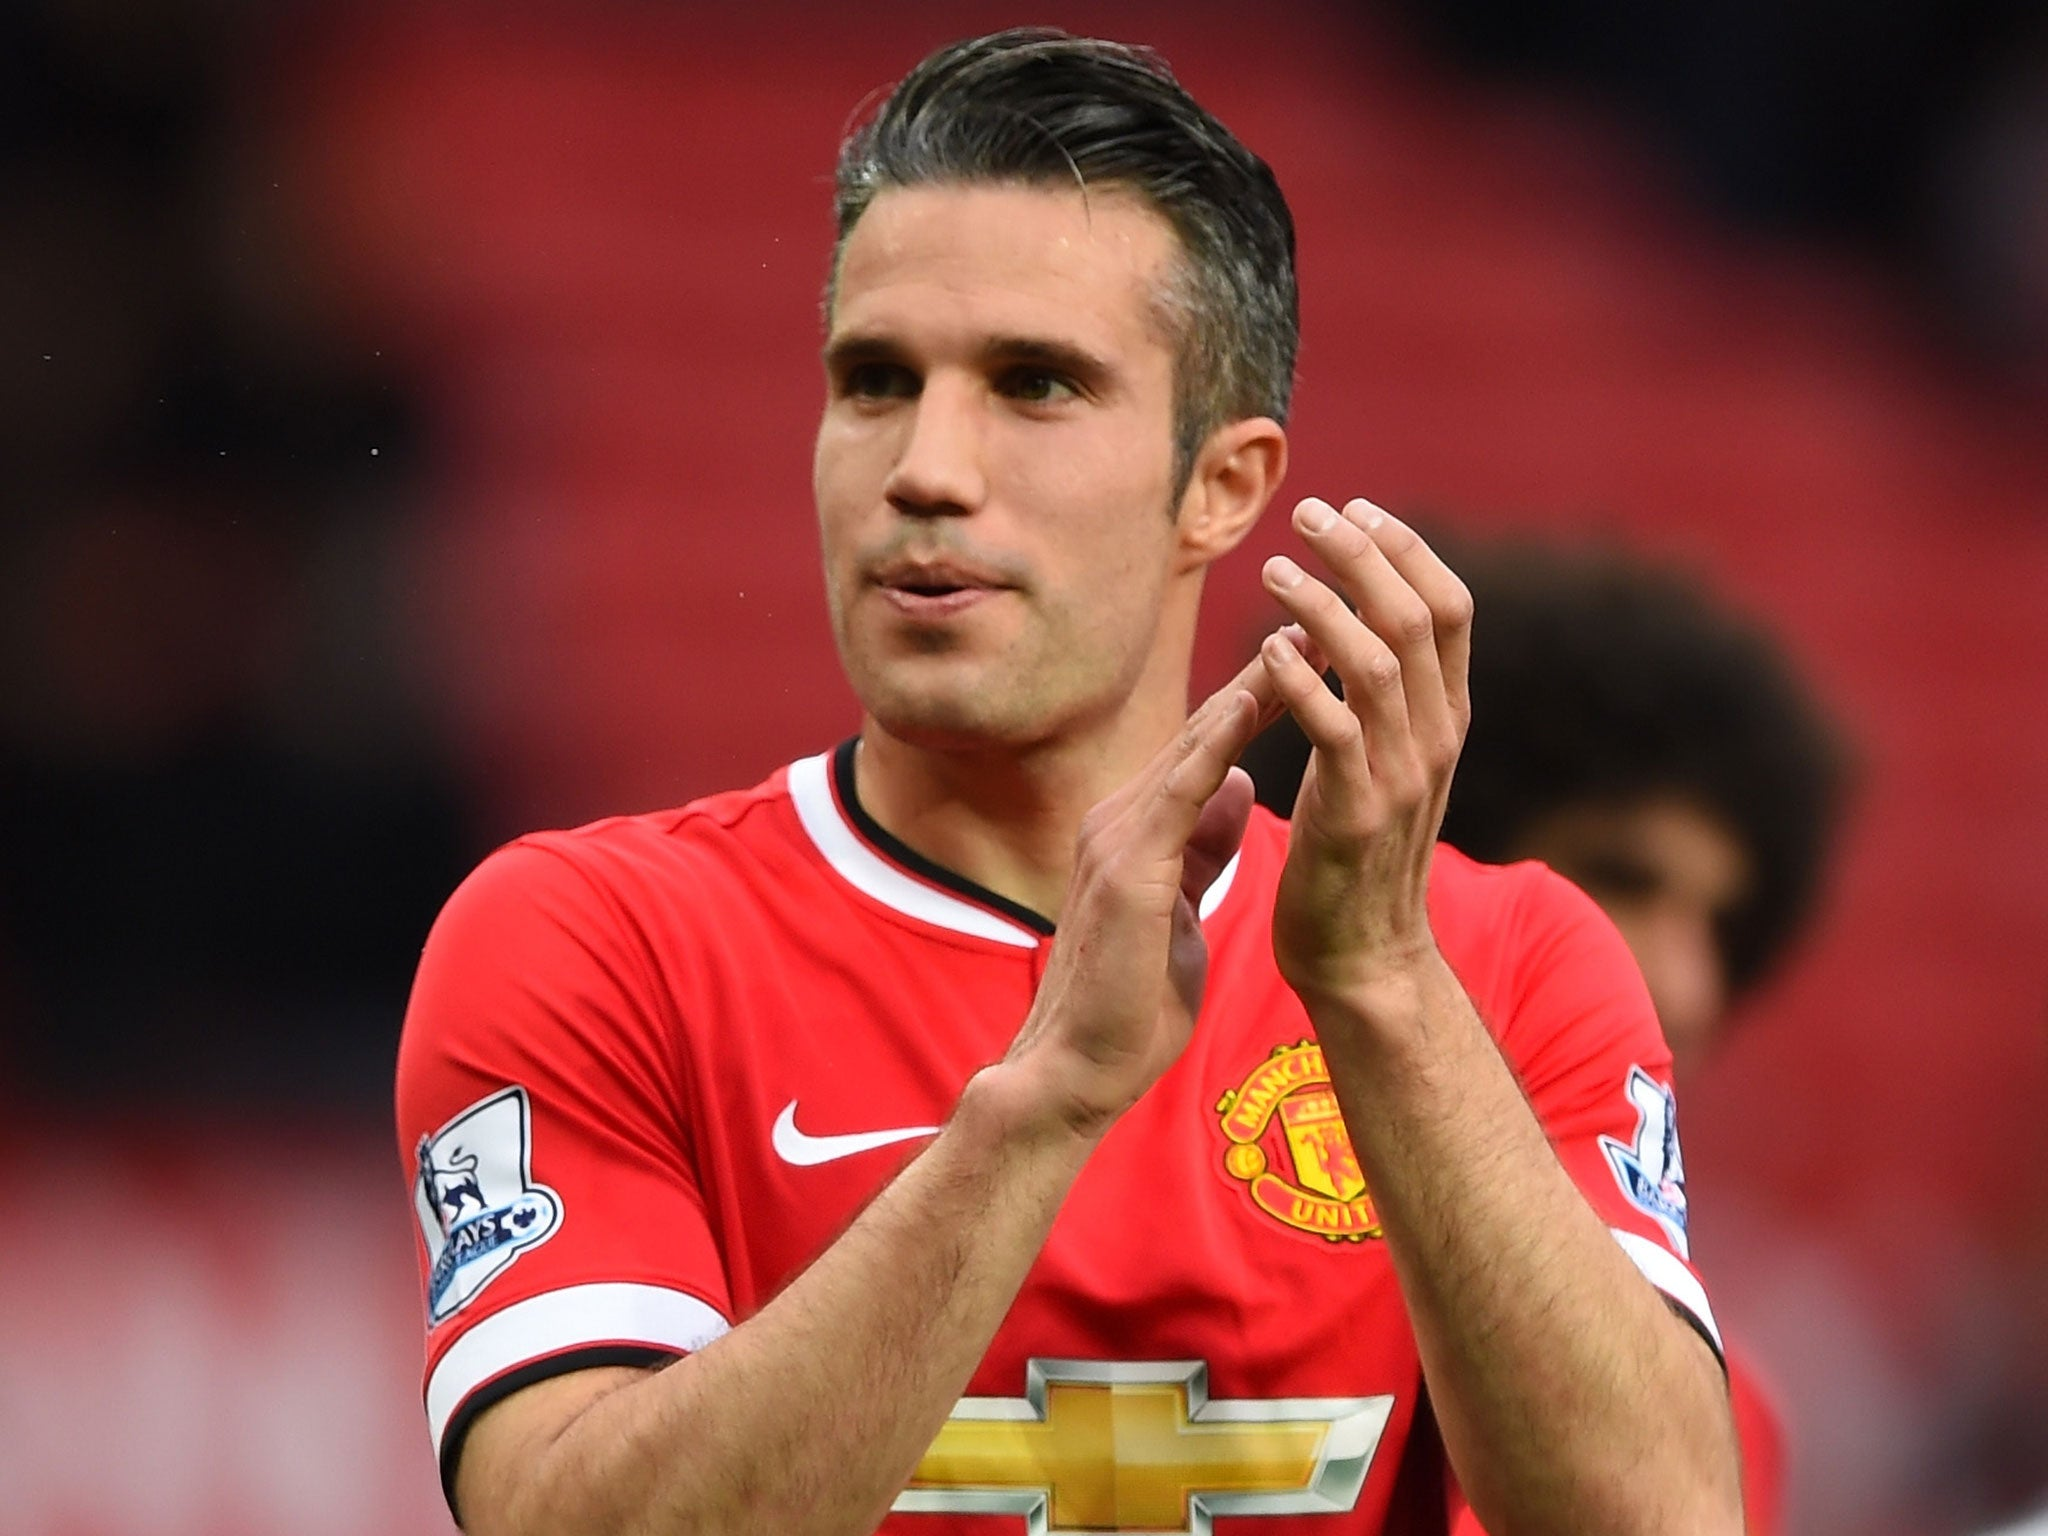 Robin van persie to fenerbahce manchester united agree to sell robin van persie to fenerbahce manchester united agree to sell striker to turkish side for 47m the independent fandeluxe Document